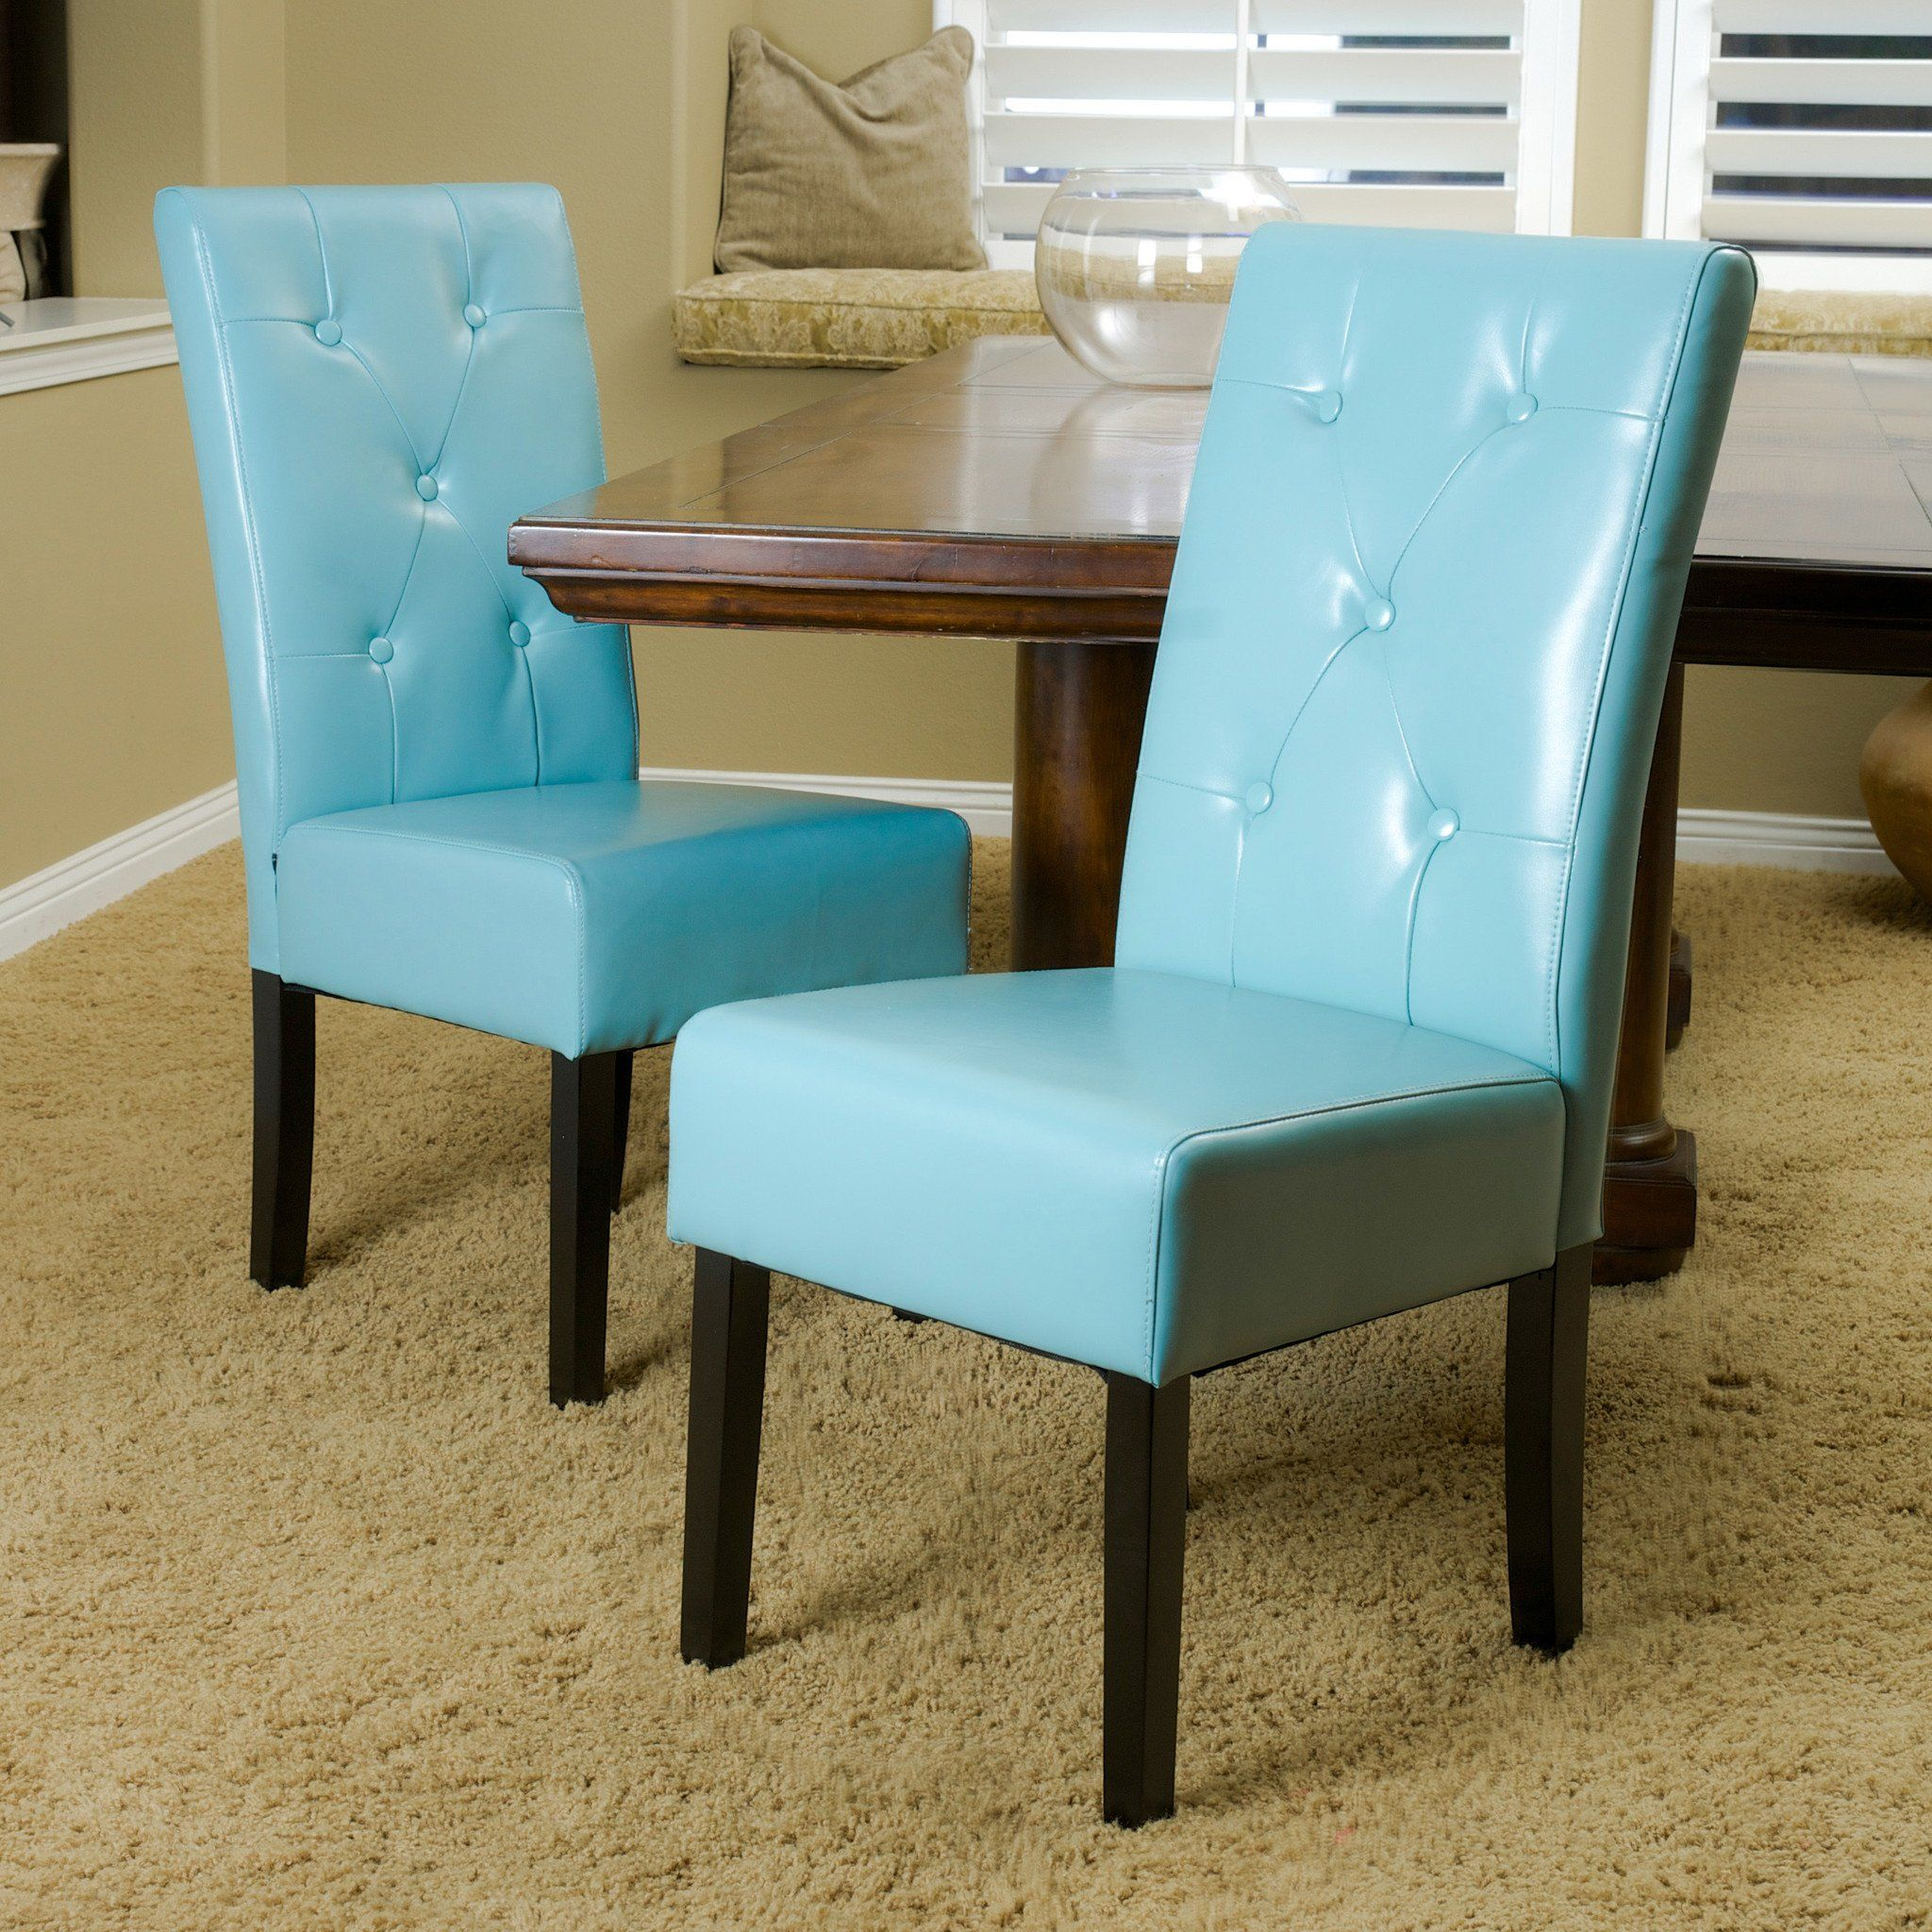 Alexander Bonded Leather Dining Chair Teal Blue In 2021 Leather Dining Chairs Dining Room Teal Dining Chairs